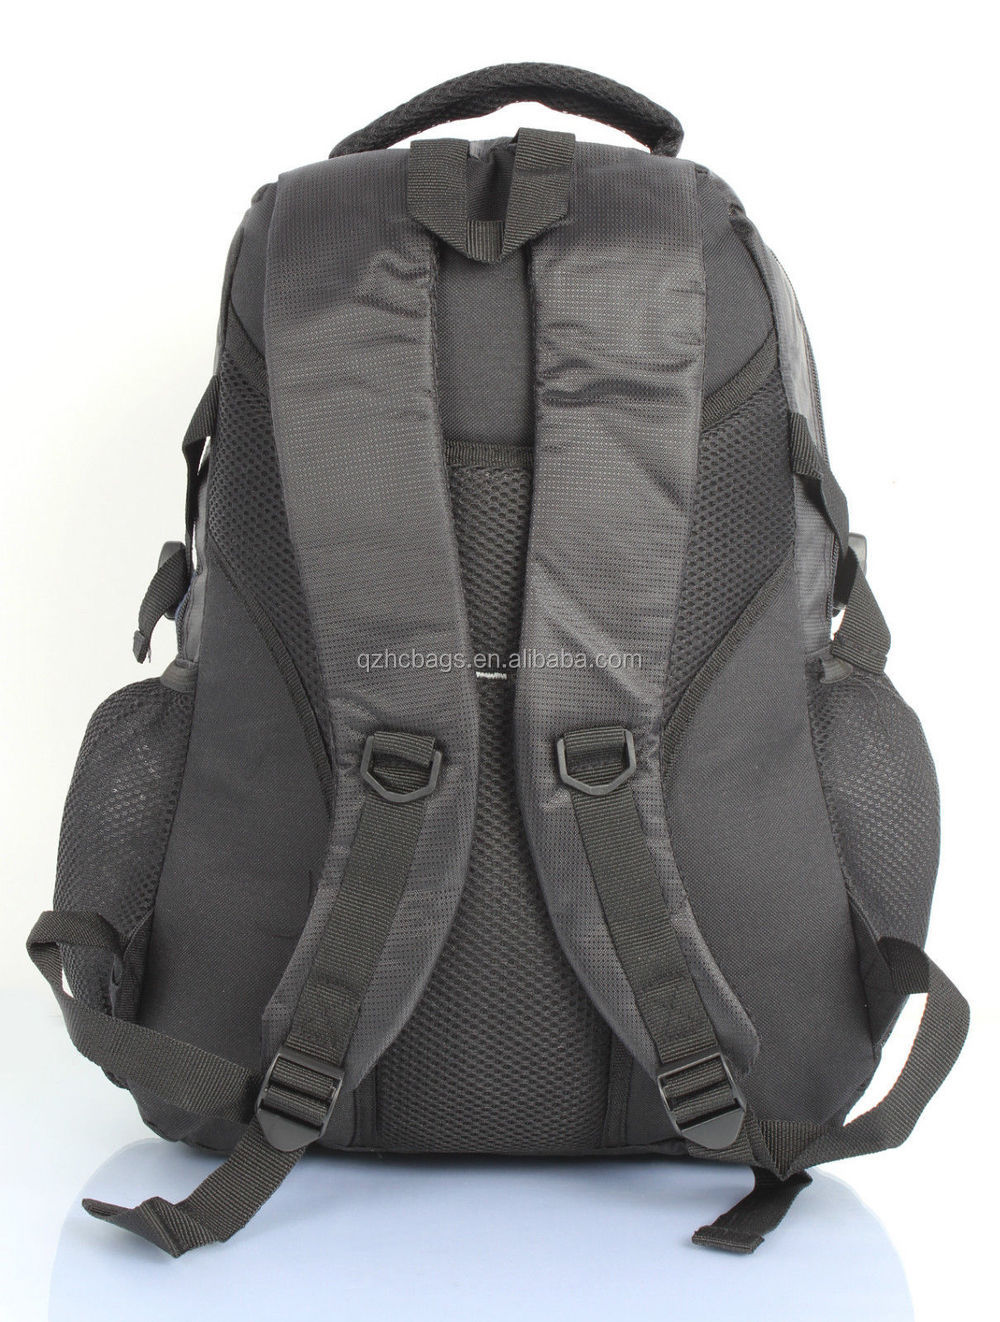 High Quality Book Bag Big Boys School Bag New Design School Bags ...